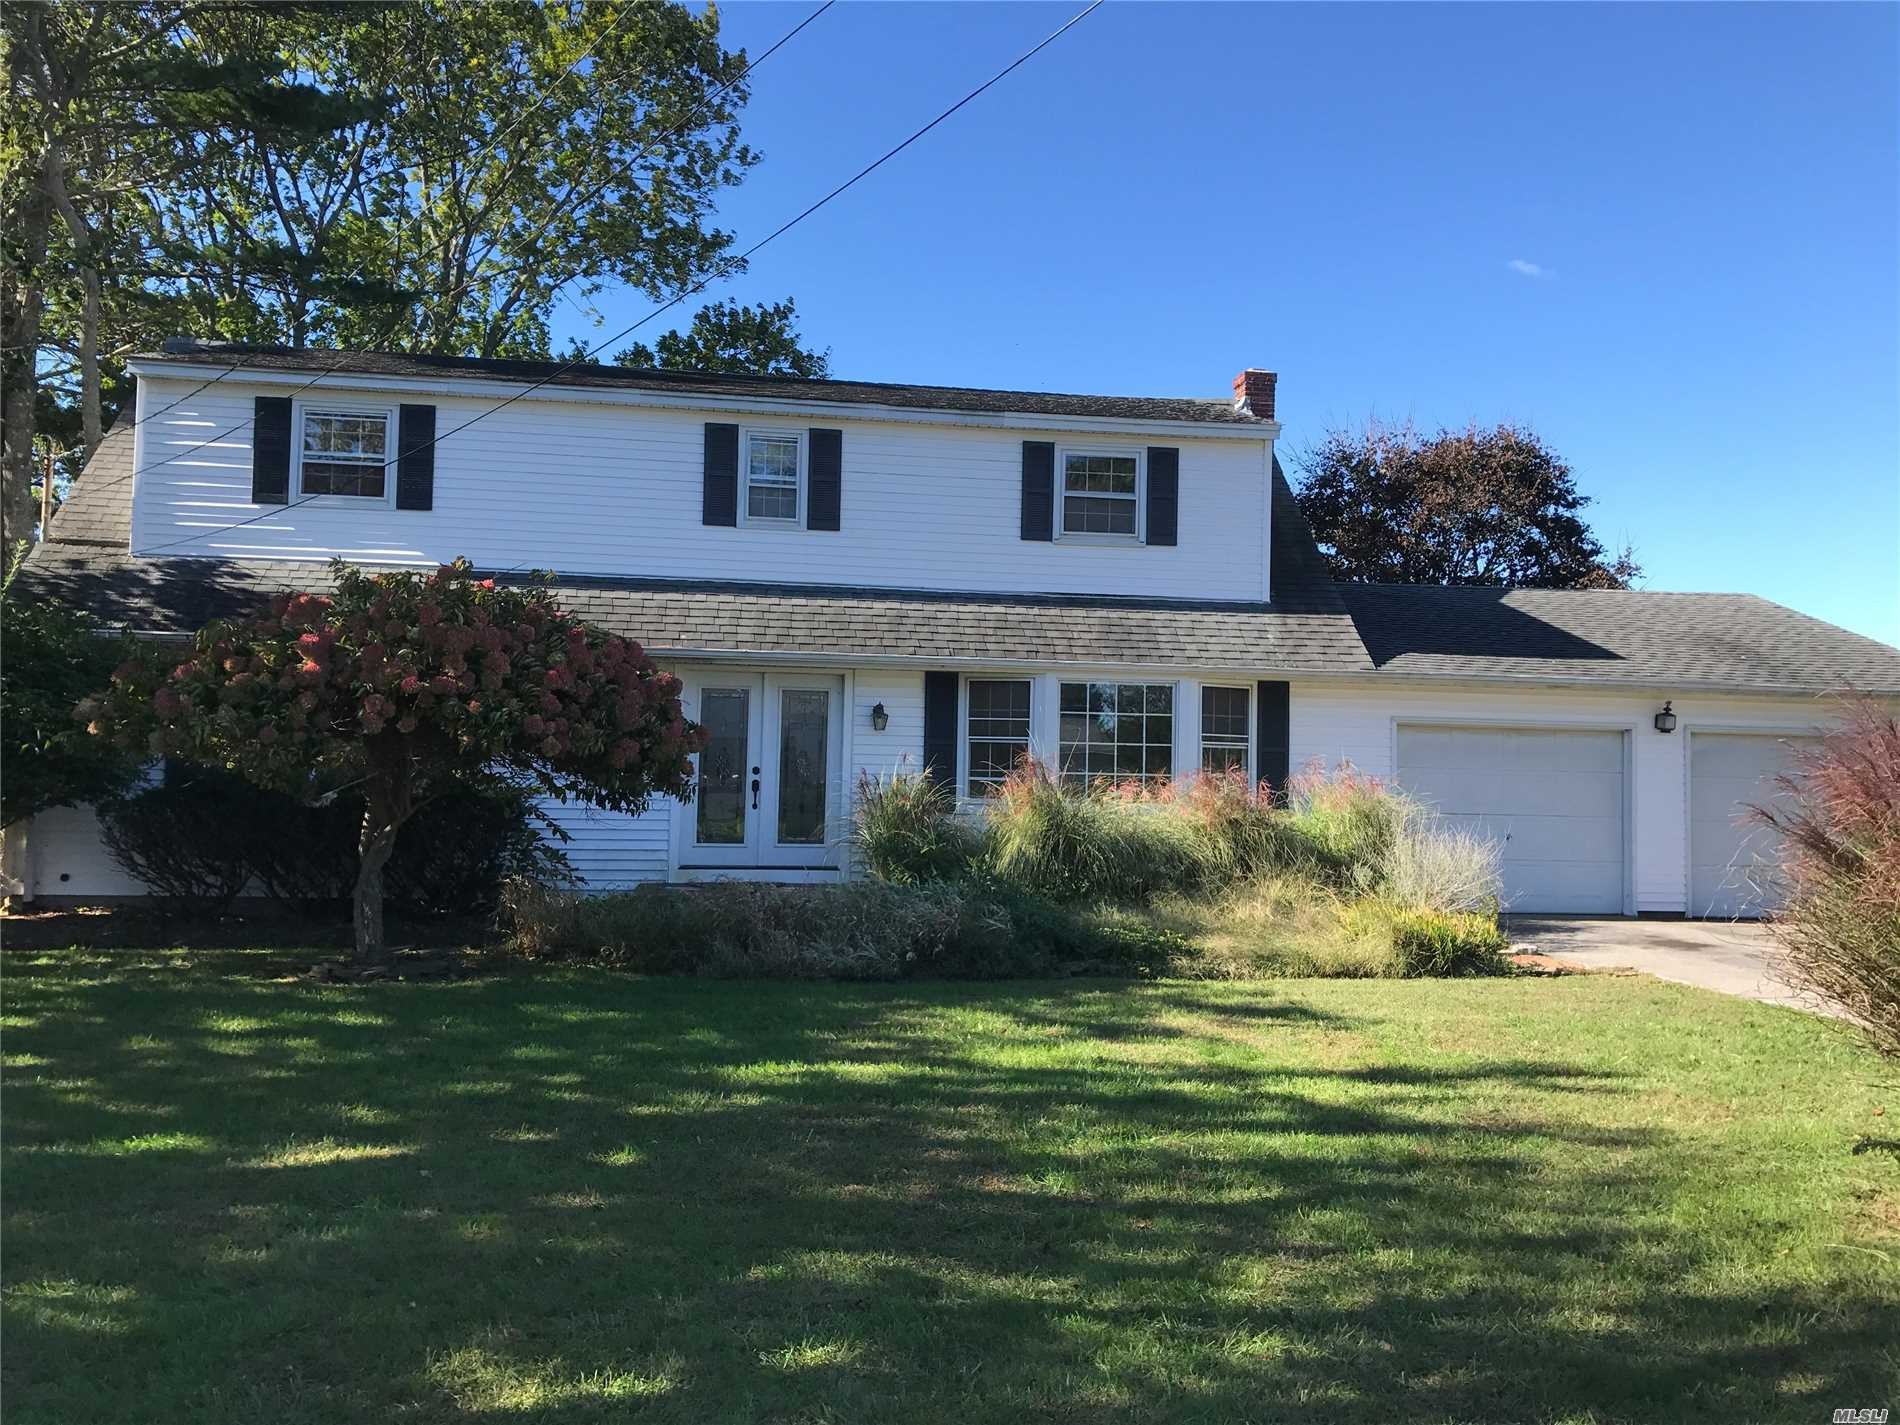 Lovely, Large Family Home In A Quiet Neighborhood. 5 Bed/2 Ba. Sunroom On Western Side. Backs Up To Open Space. Bay Beach At End Of Block. Great Yard.